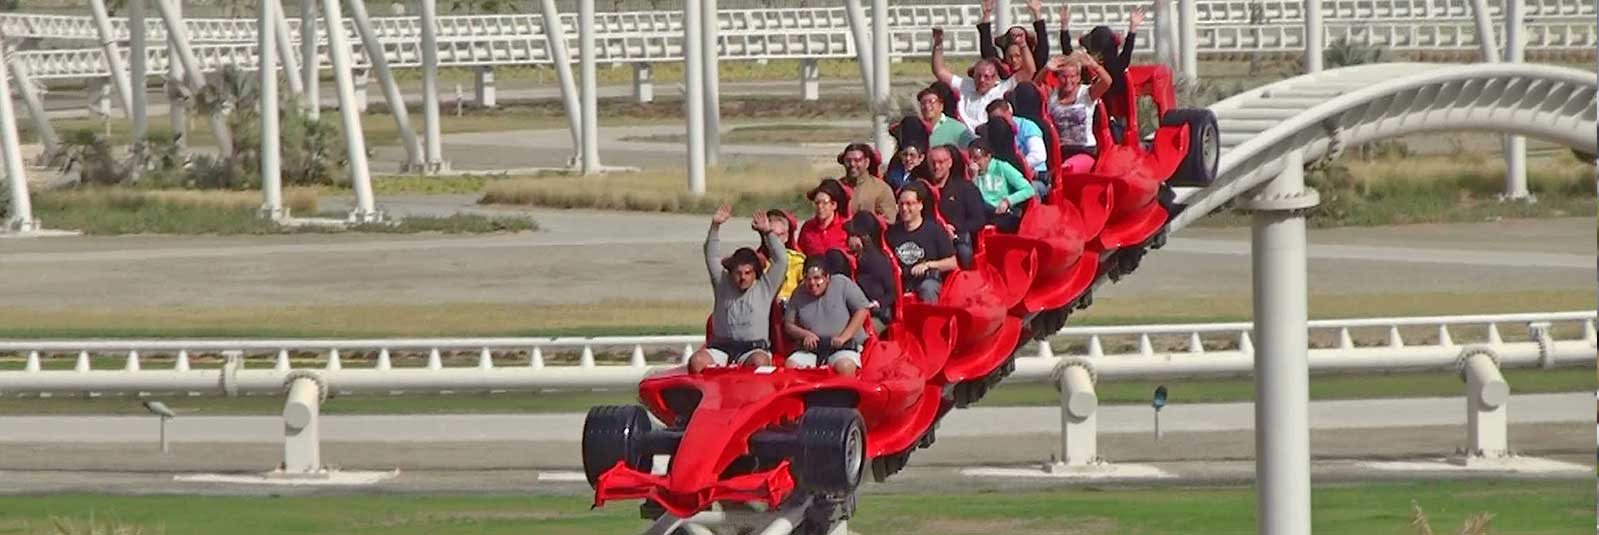 Ferrari-World-Ride